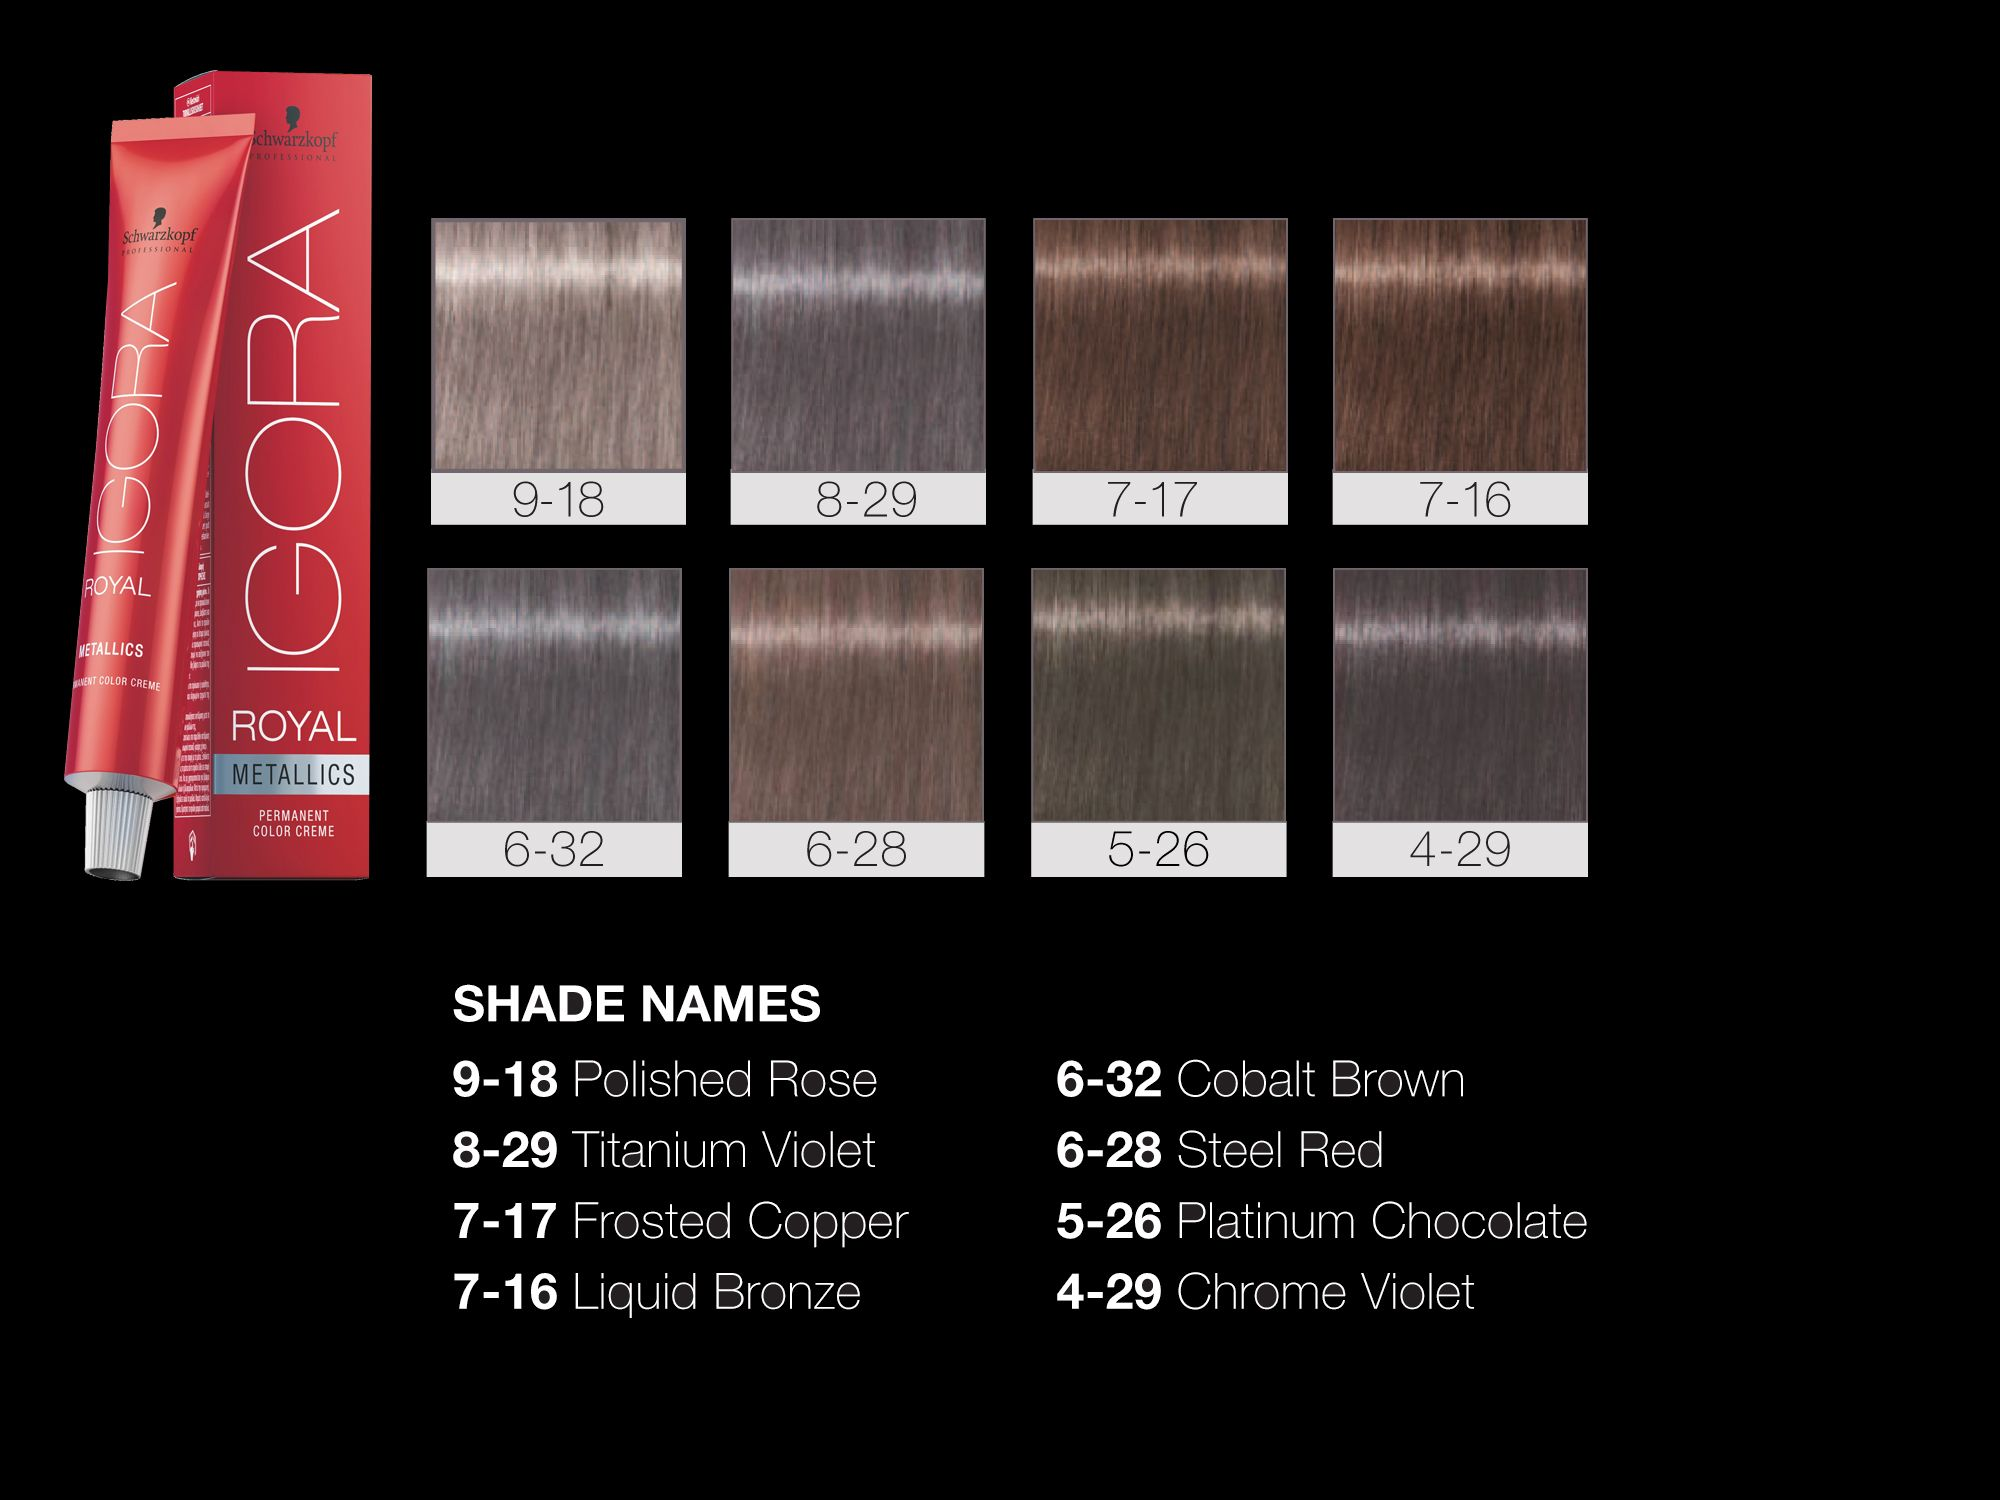 Schwarzkopf professional igora royal metallics color shades schwarzkopf professional igora royal metallics color shades nvjuhfo Gallery